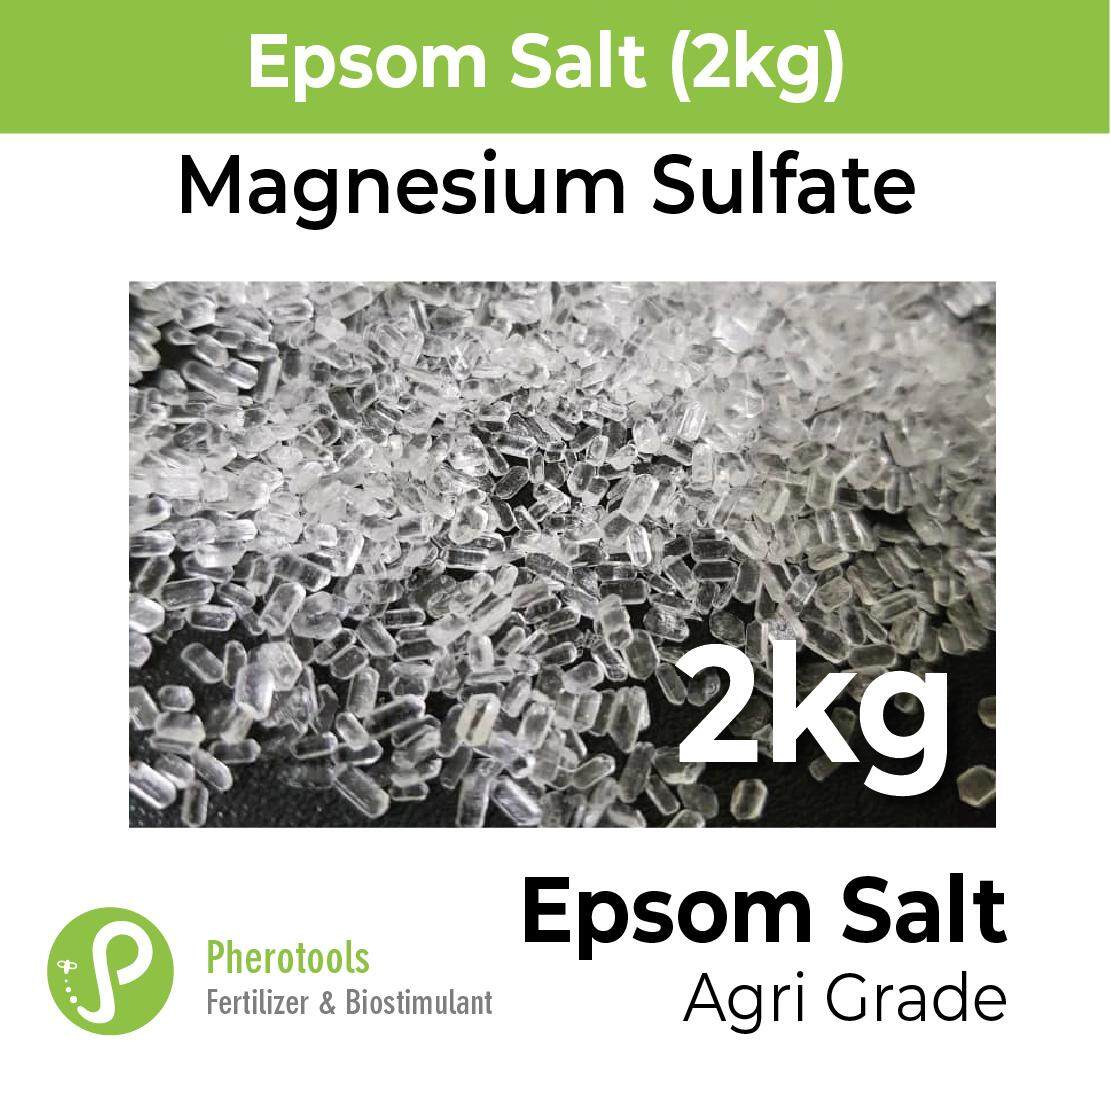 2kg Epsom Salt (magnesium Sulfate) - Agricultural Grade (magnesium Sulphate Mg2so4) By Plants & Bugs.